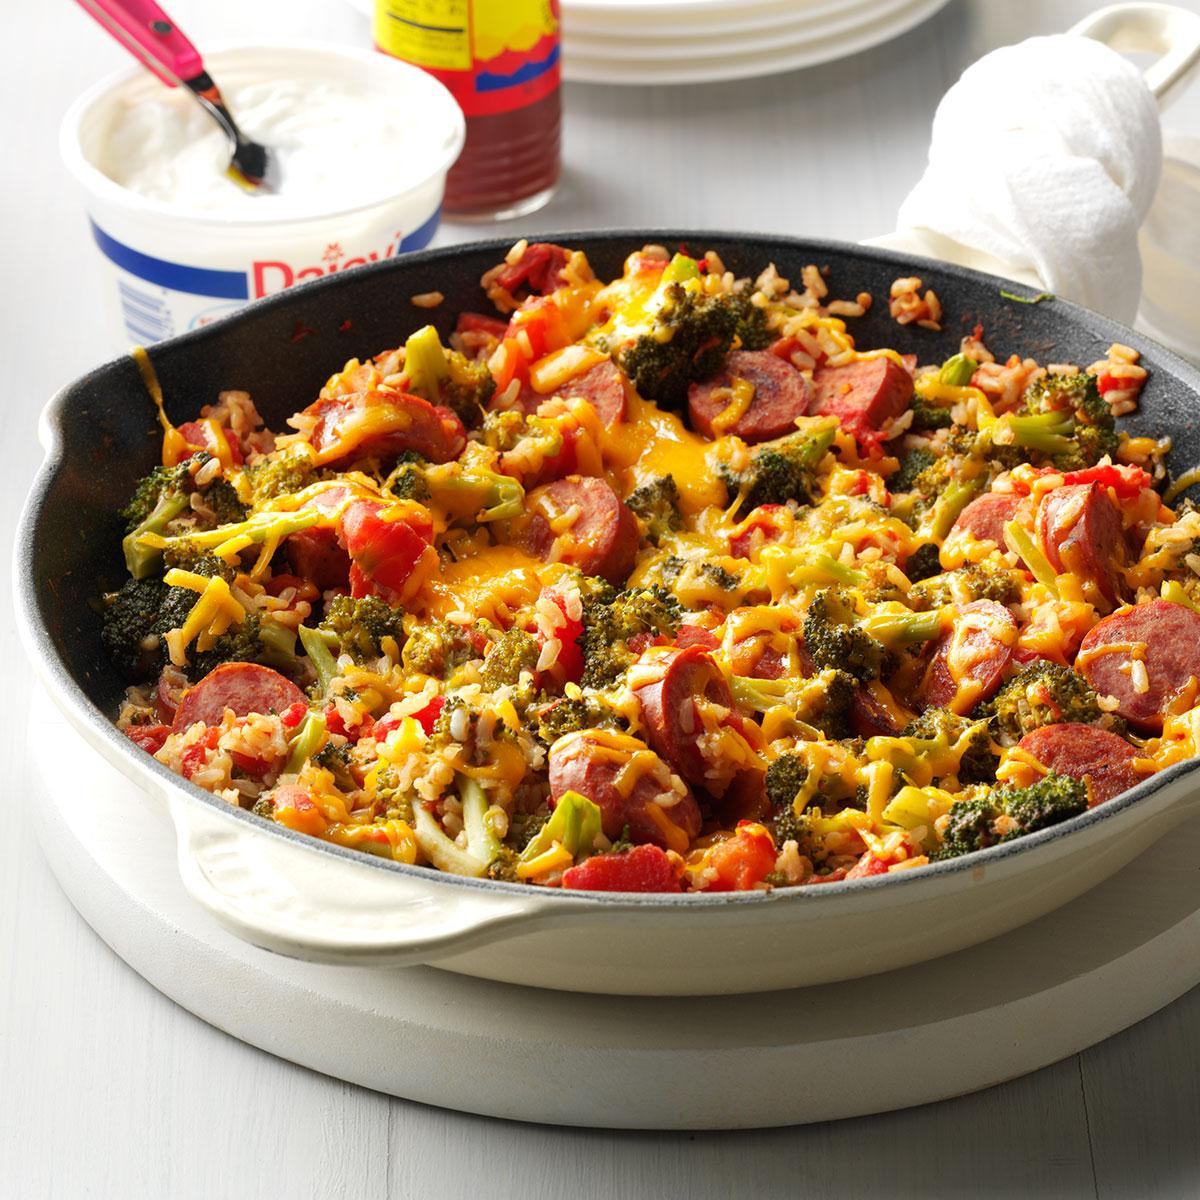 Recipes For Dinner  Broccoli Rice and Sausage Dinner Recipe